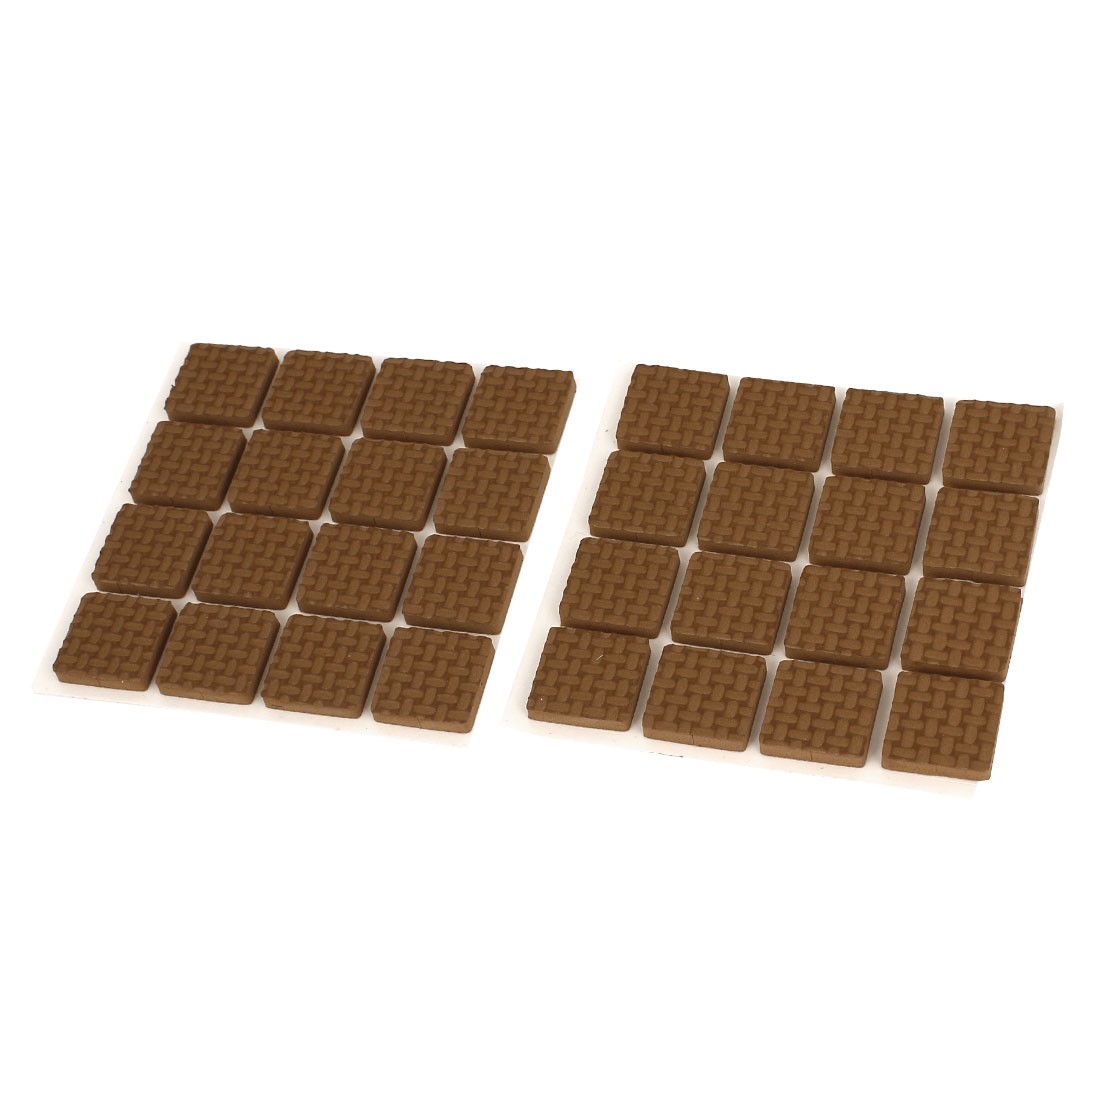 32pcs 18x18mm Brown Self Adhesive Legs Floor Protector Furniture Protection Pads